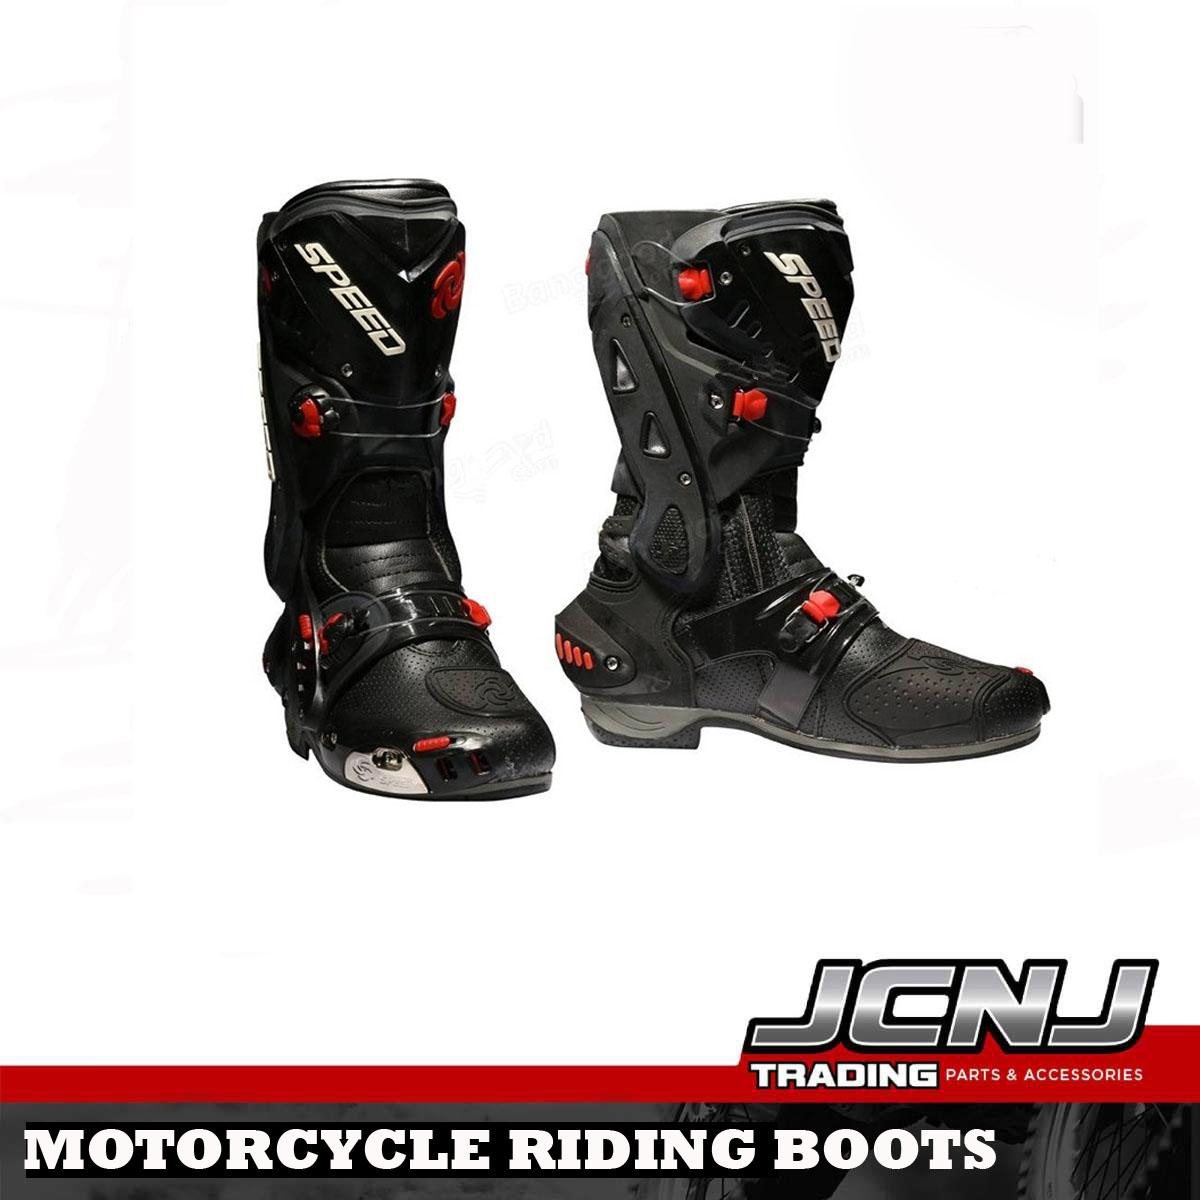 4cee6e0d51 Motorcycle Boots for sale - Motorcycle Footwear online brands ...